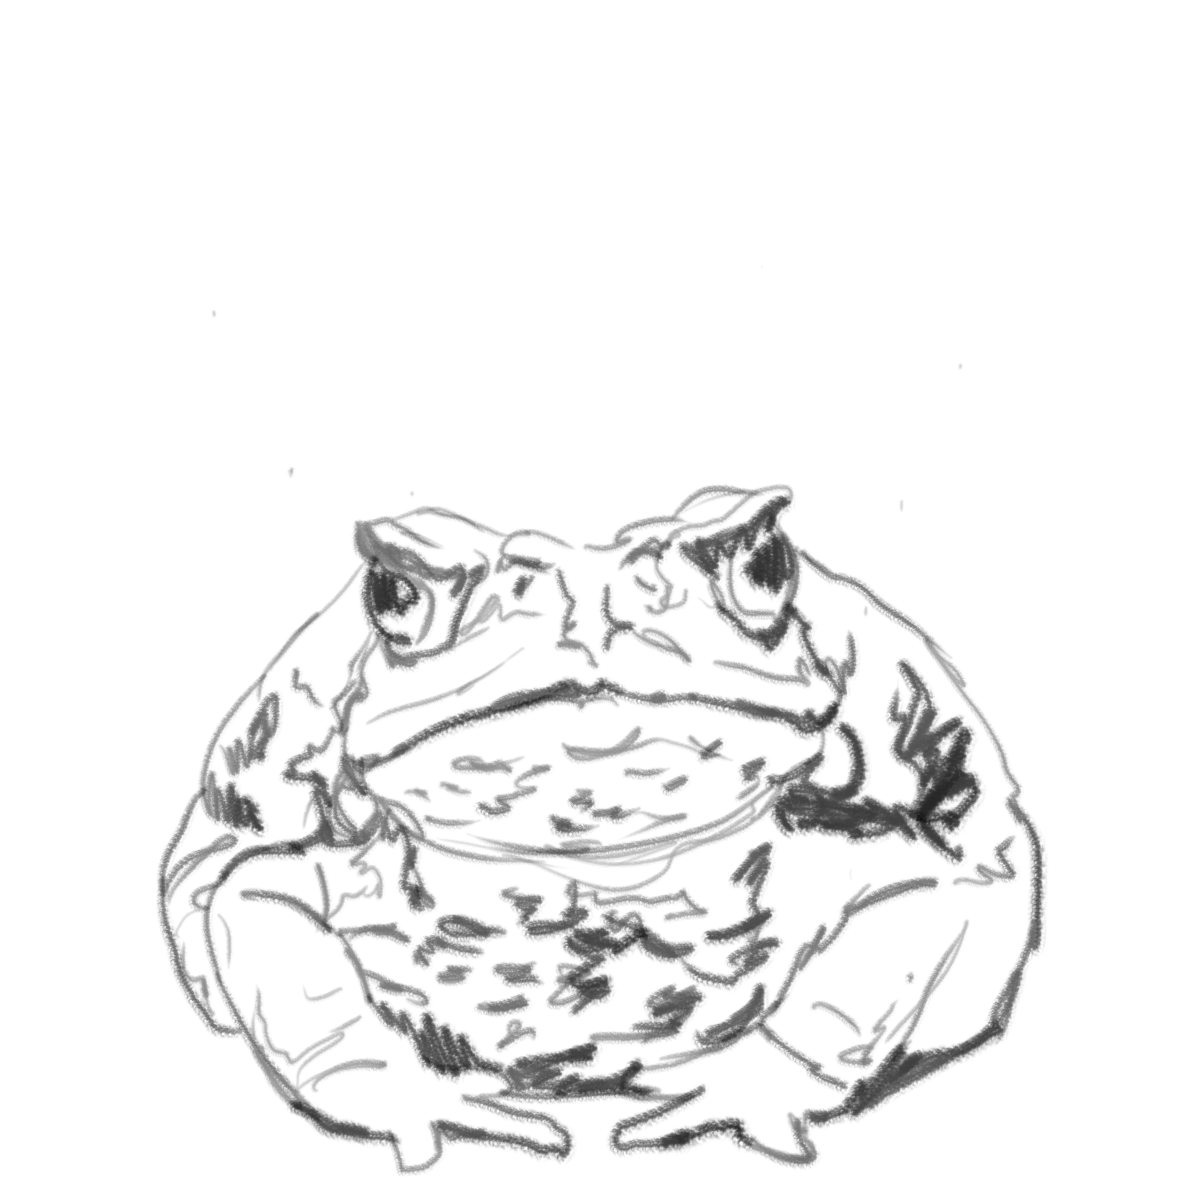 toadally bloathed